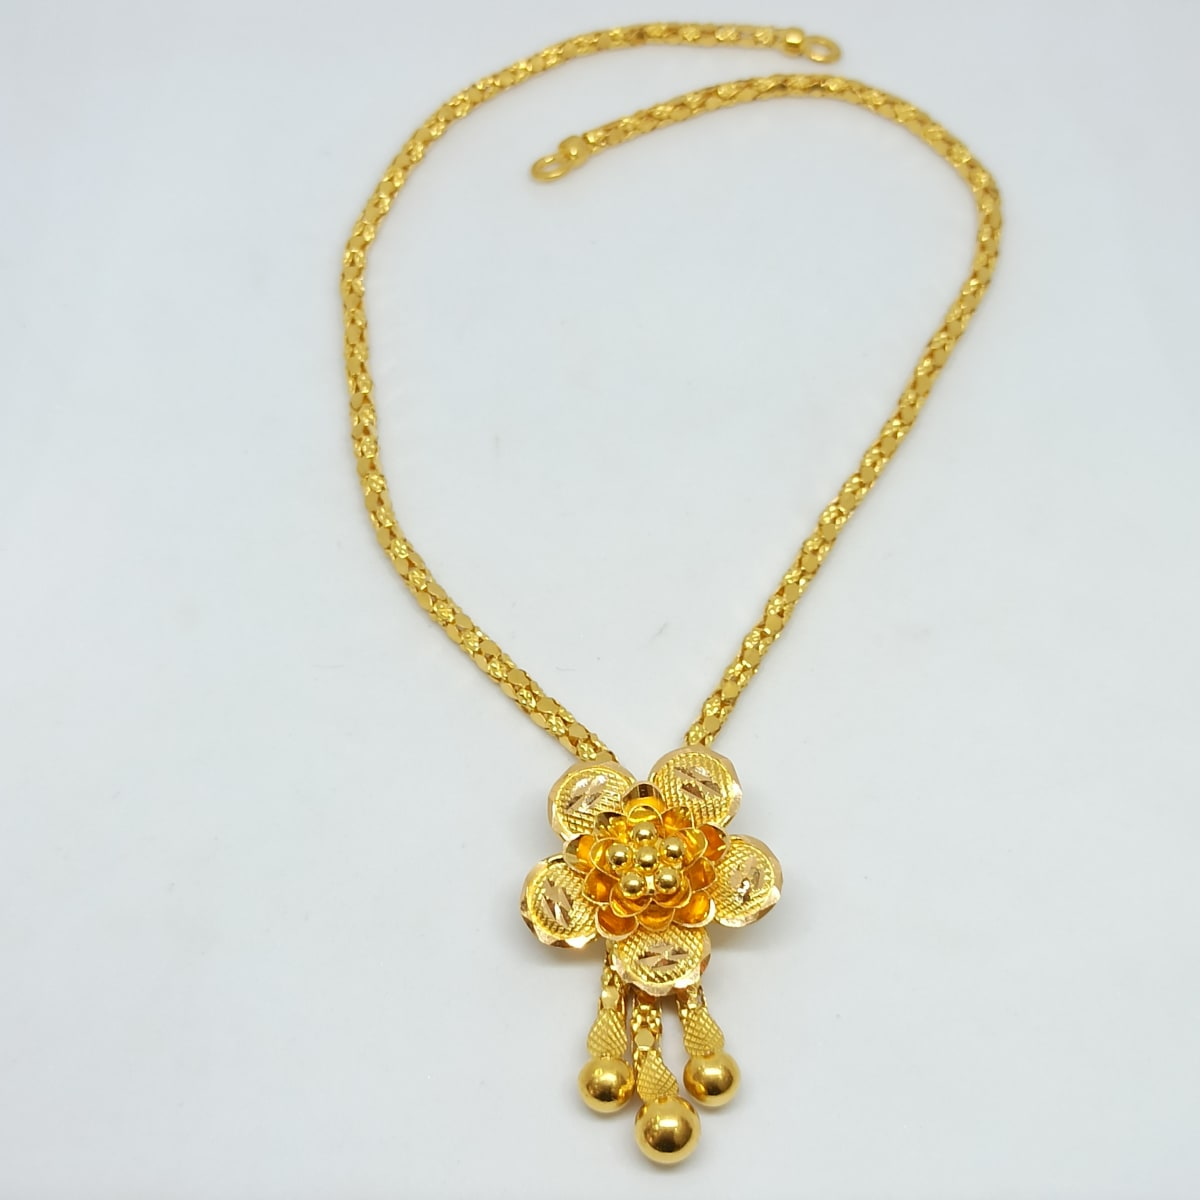 Rose Ball Chain Necklace